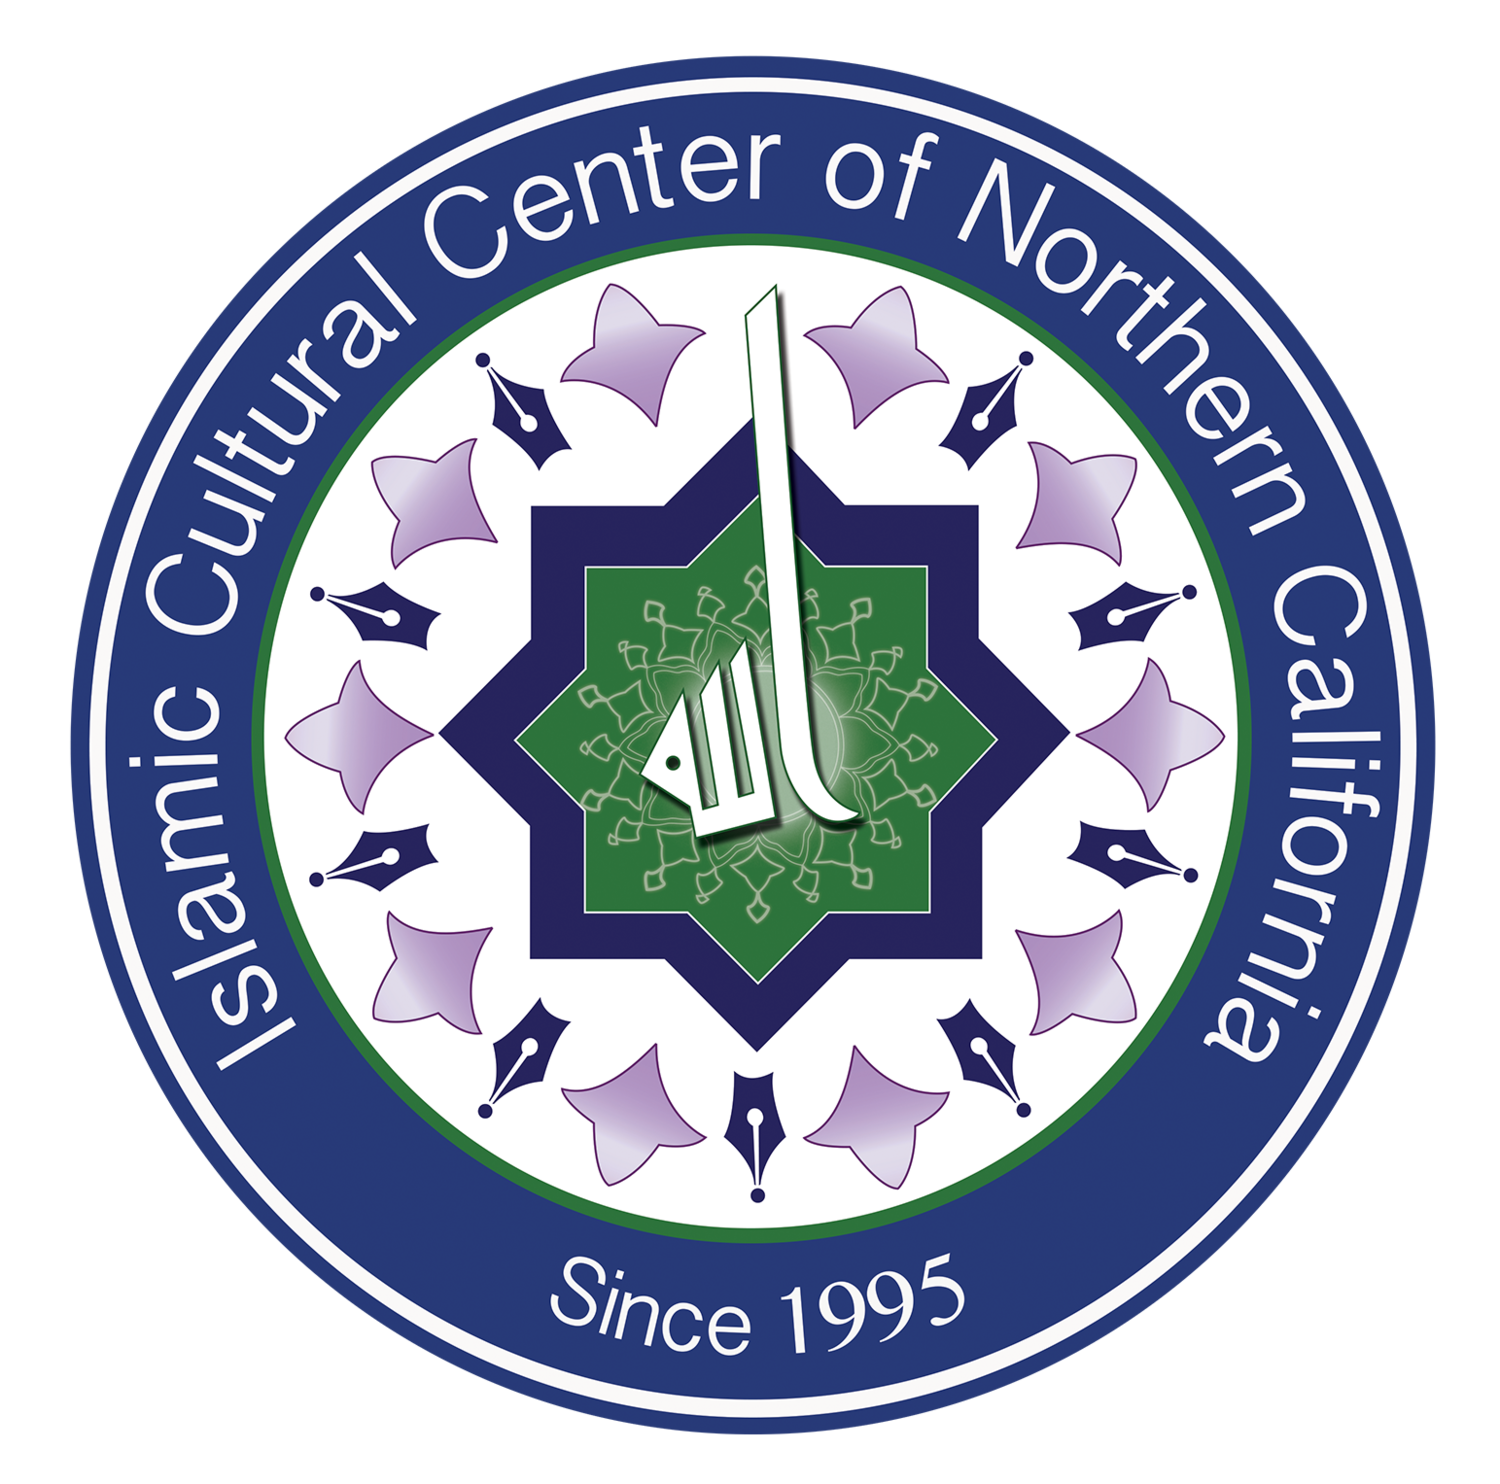 Islamic Cultural Center of Northern California (ICCNC)